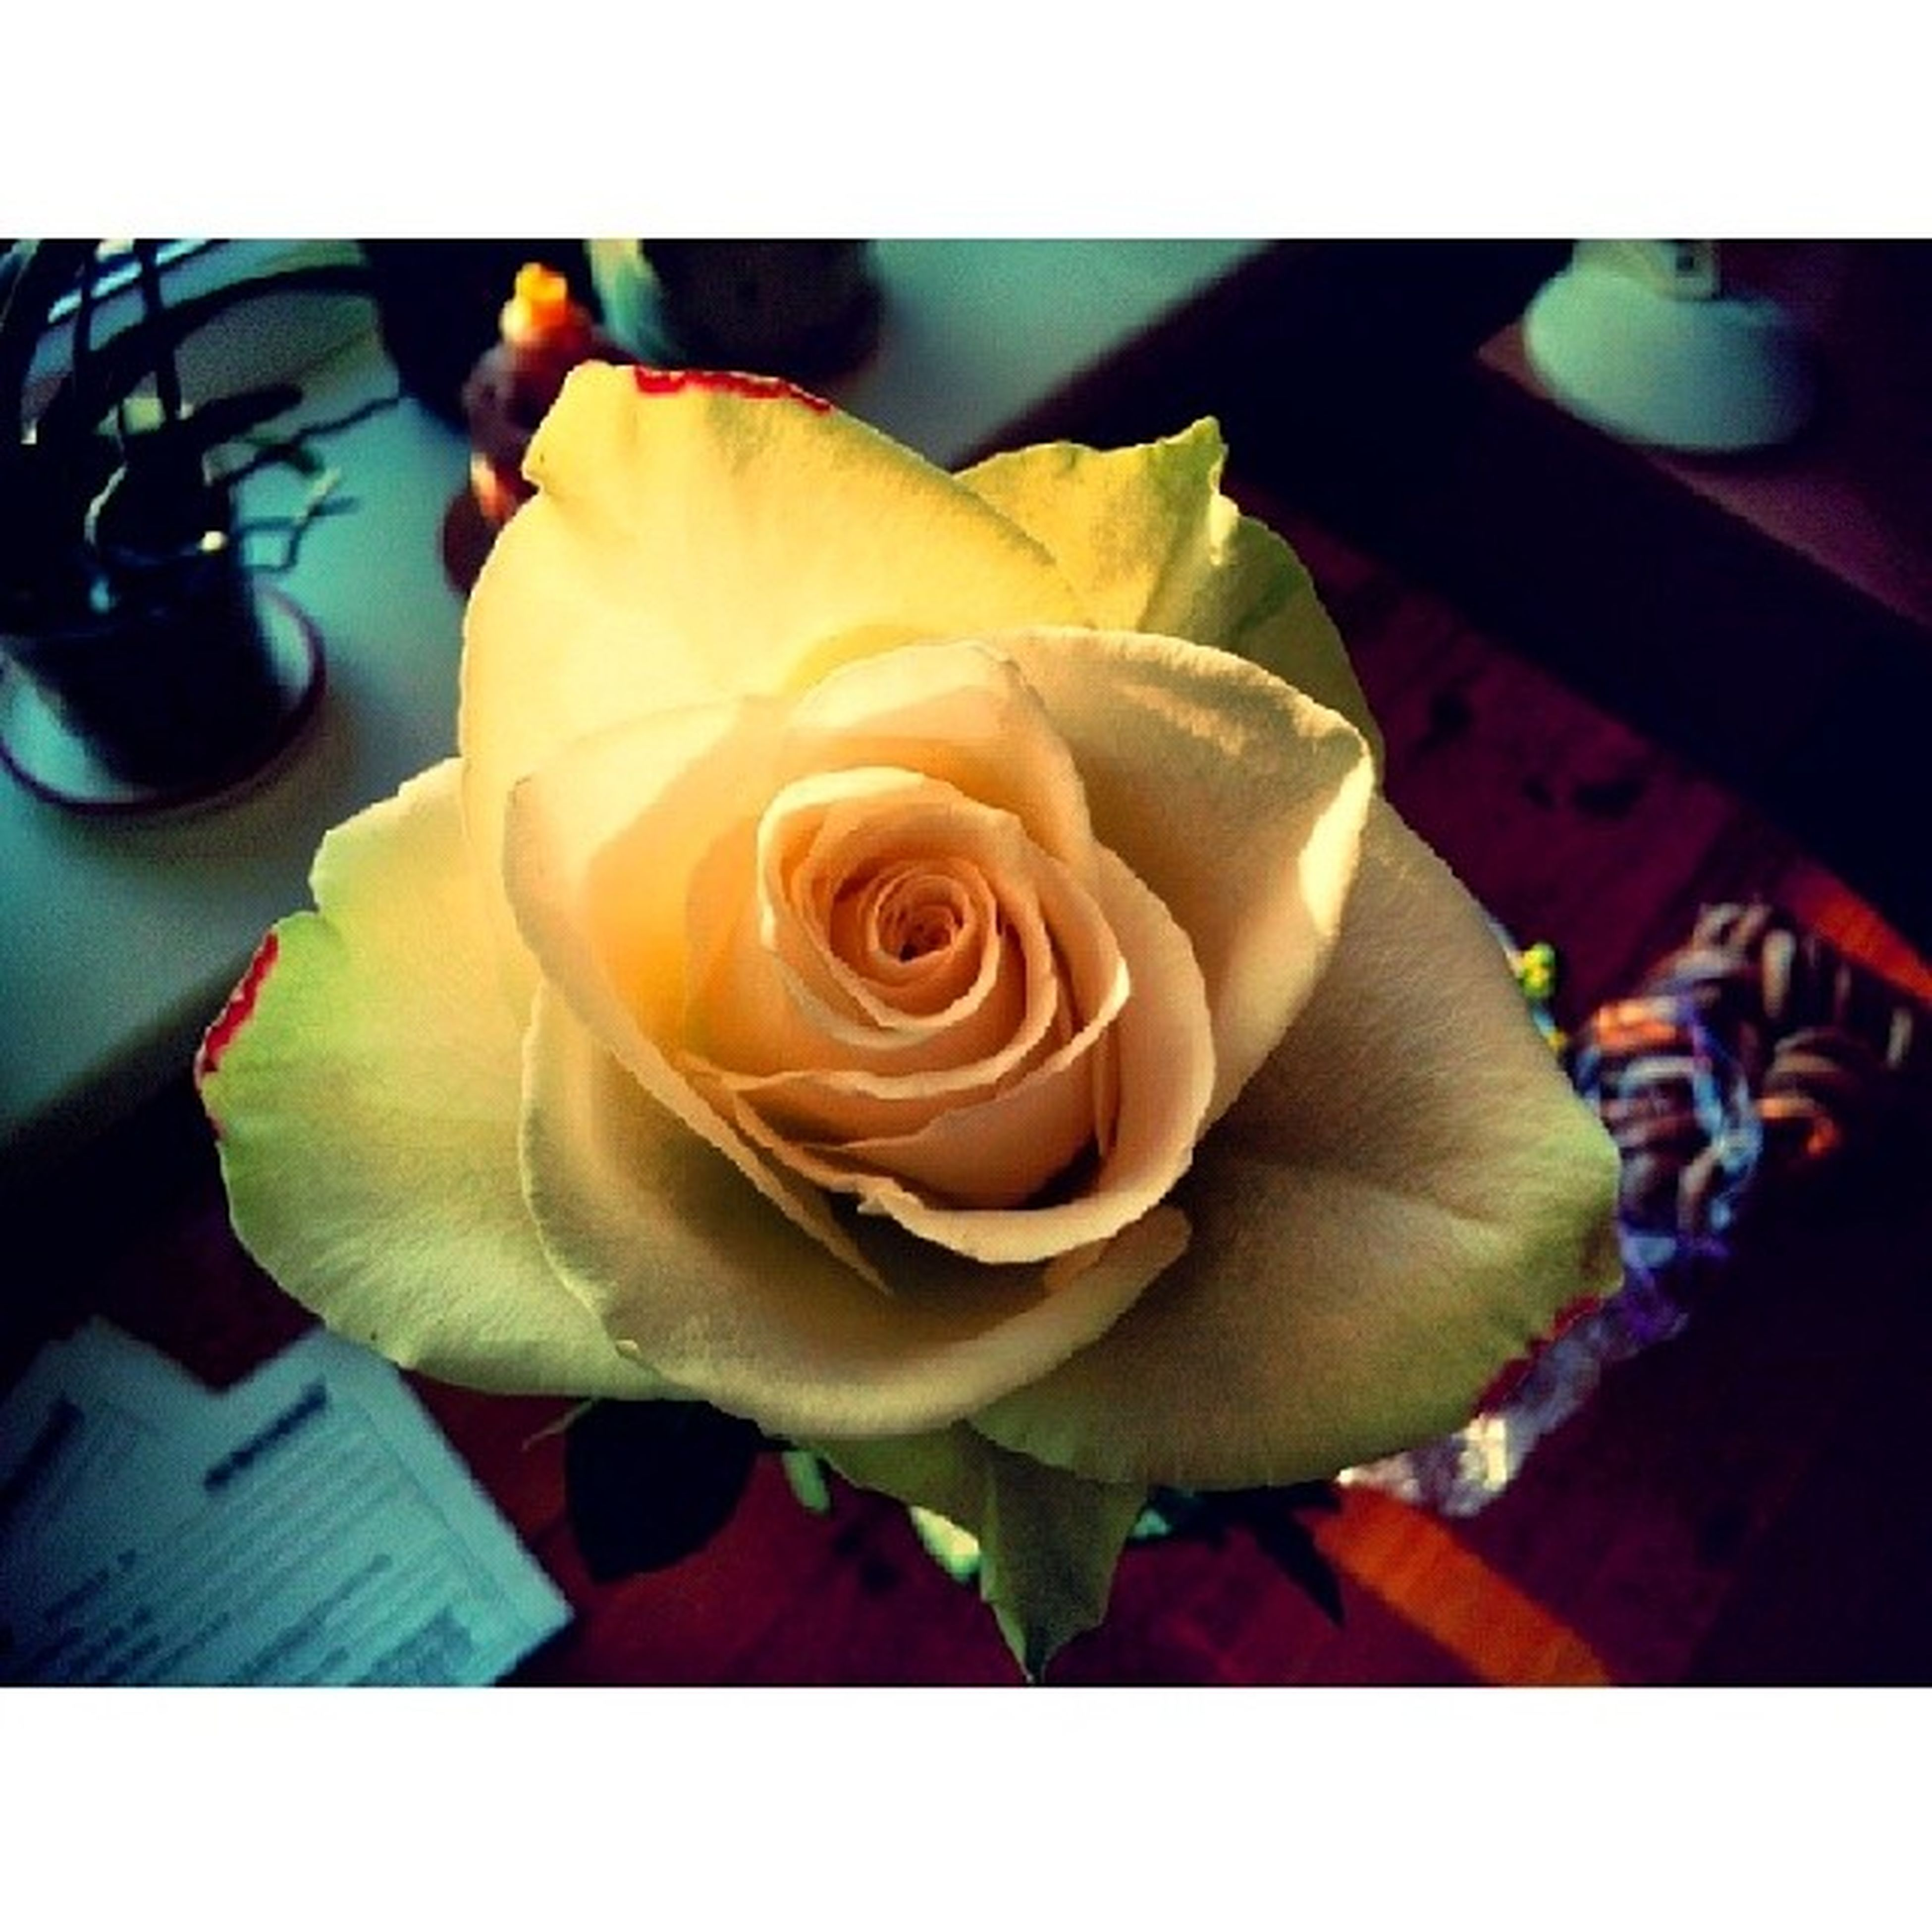 transfer print, flower, petal, flower head, auto post production filter, freshness, rose - flower, fragility, close-up, beauty in nature, rose, growth, nature, indoors, high angle view, focus on foreground, blooming, single flower, plant, leaf